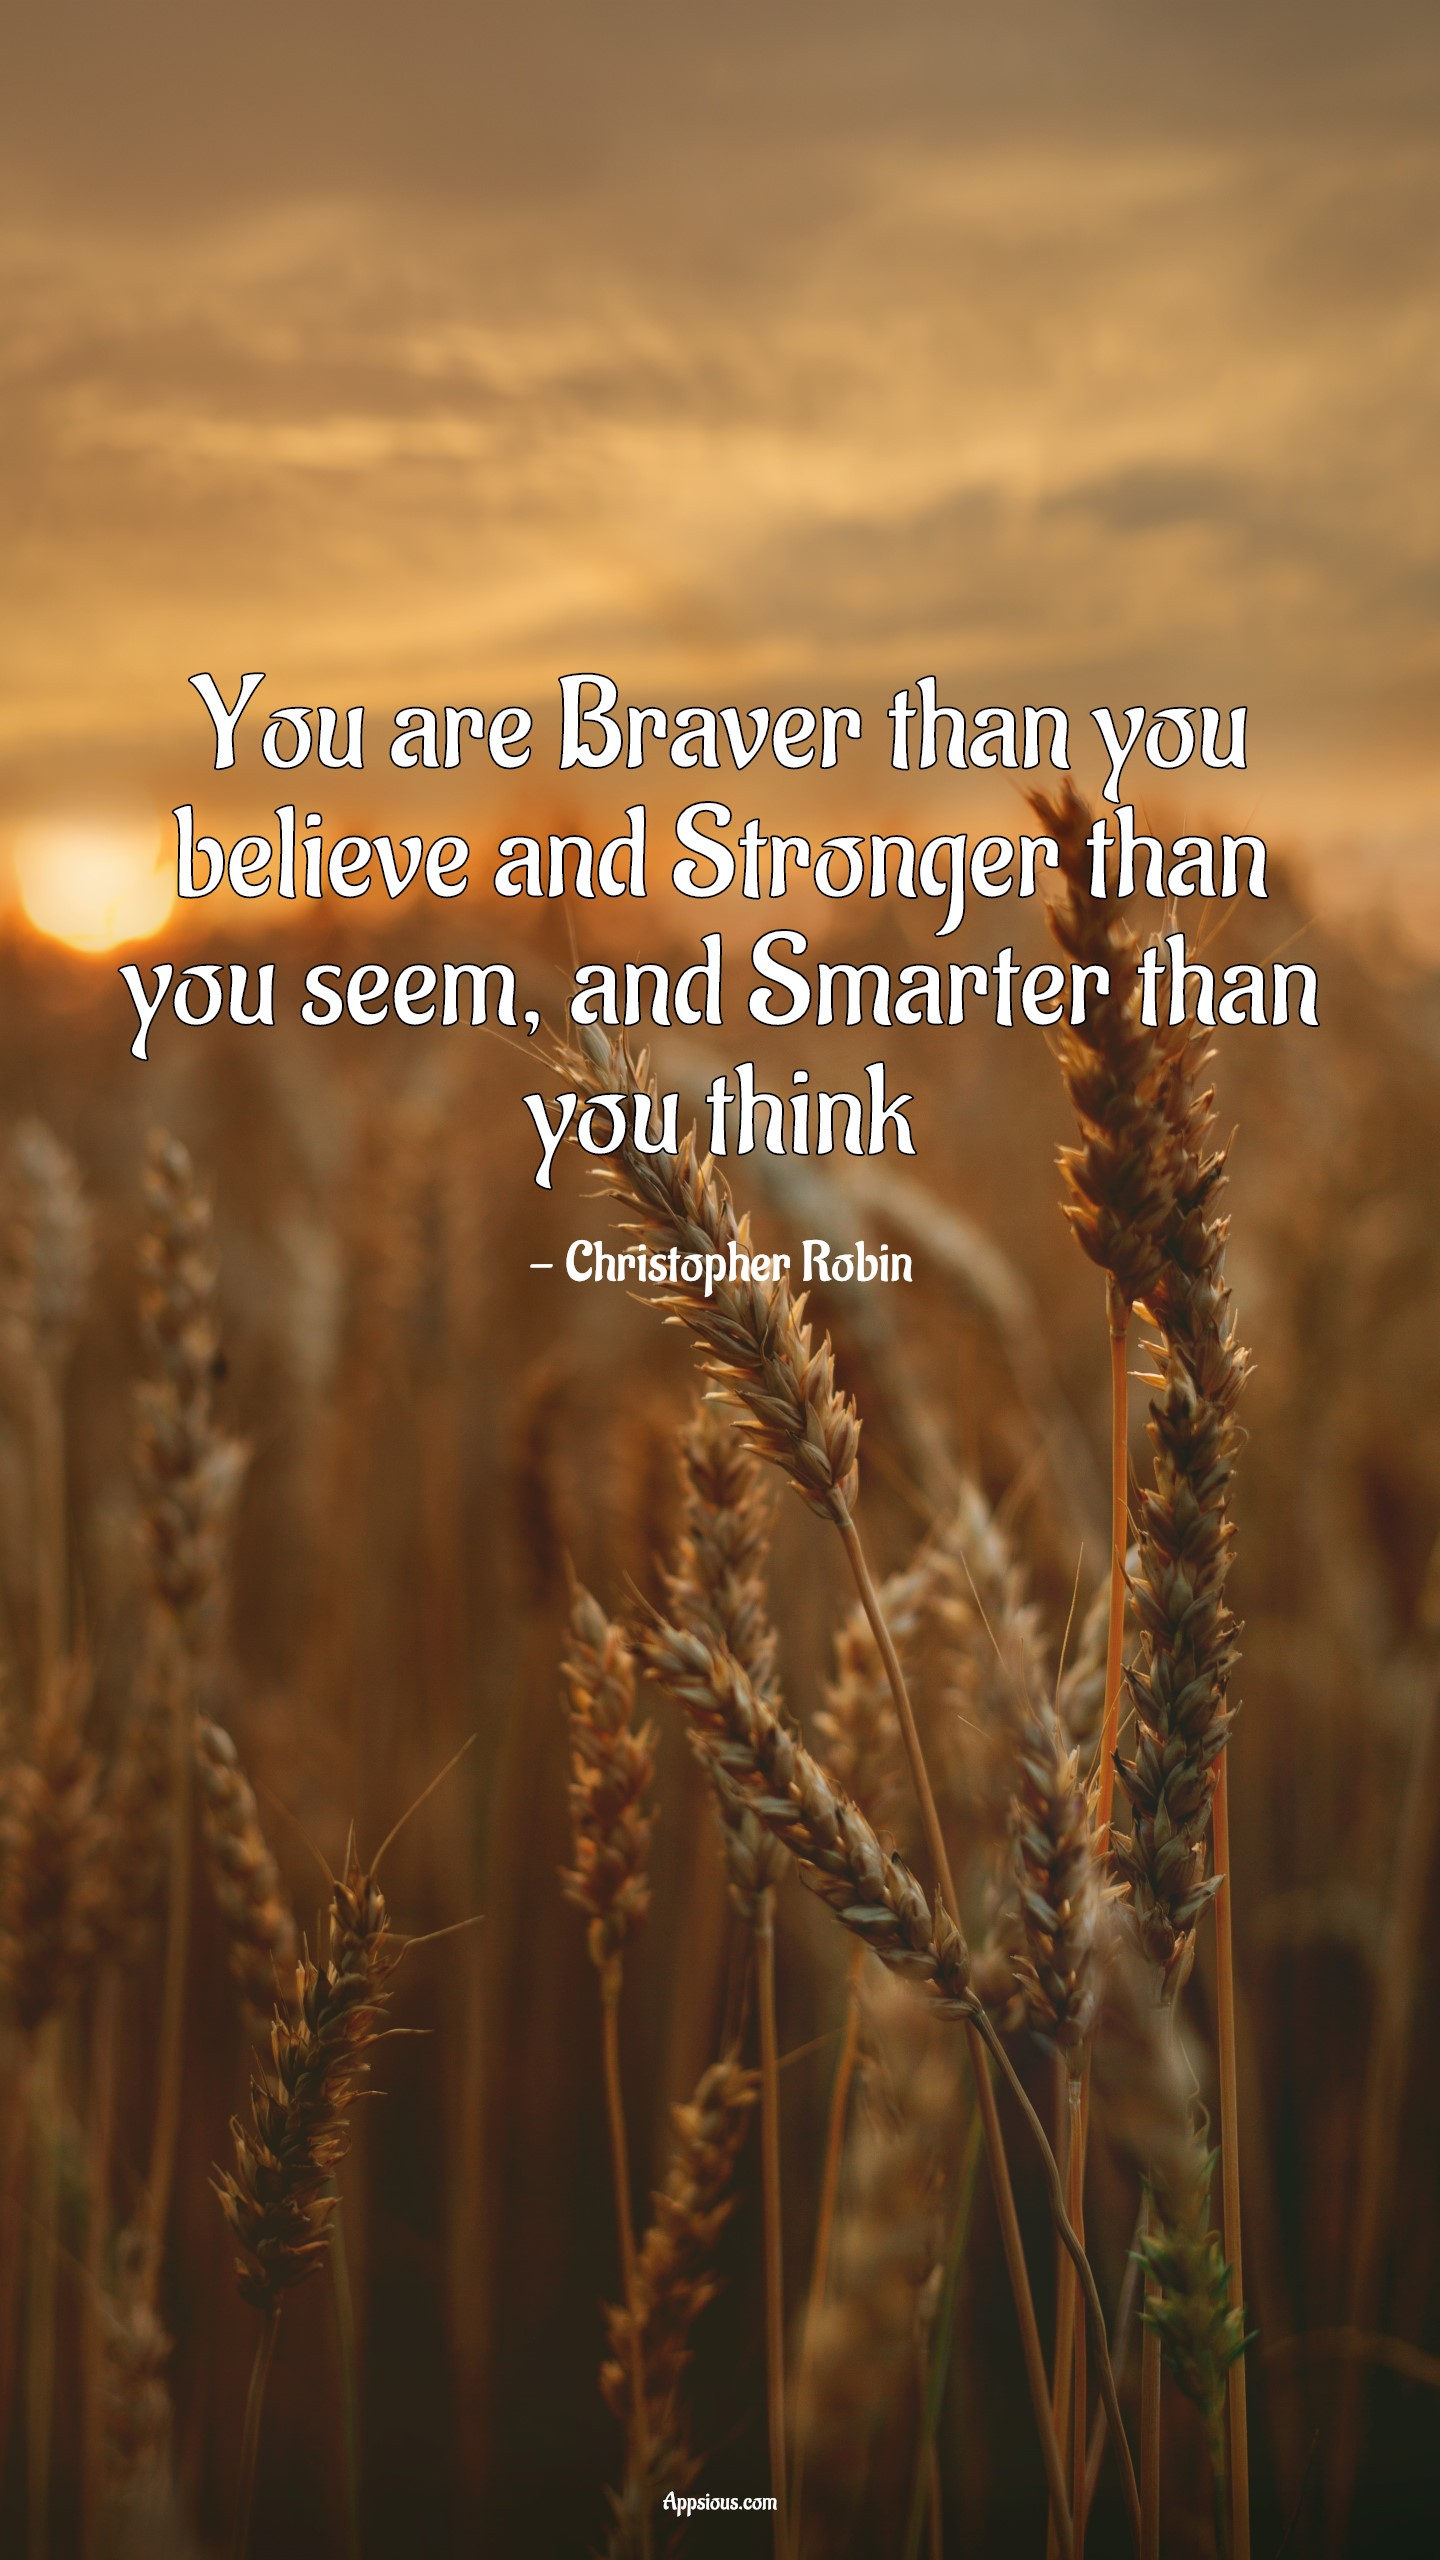 You are Braver than you believe and Stronger than you seem, and Smarter than you think